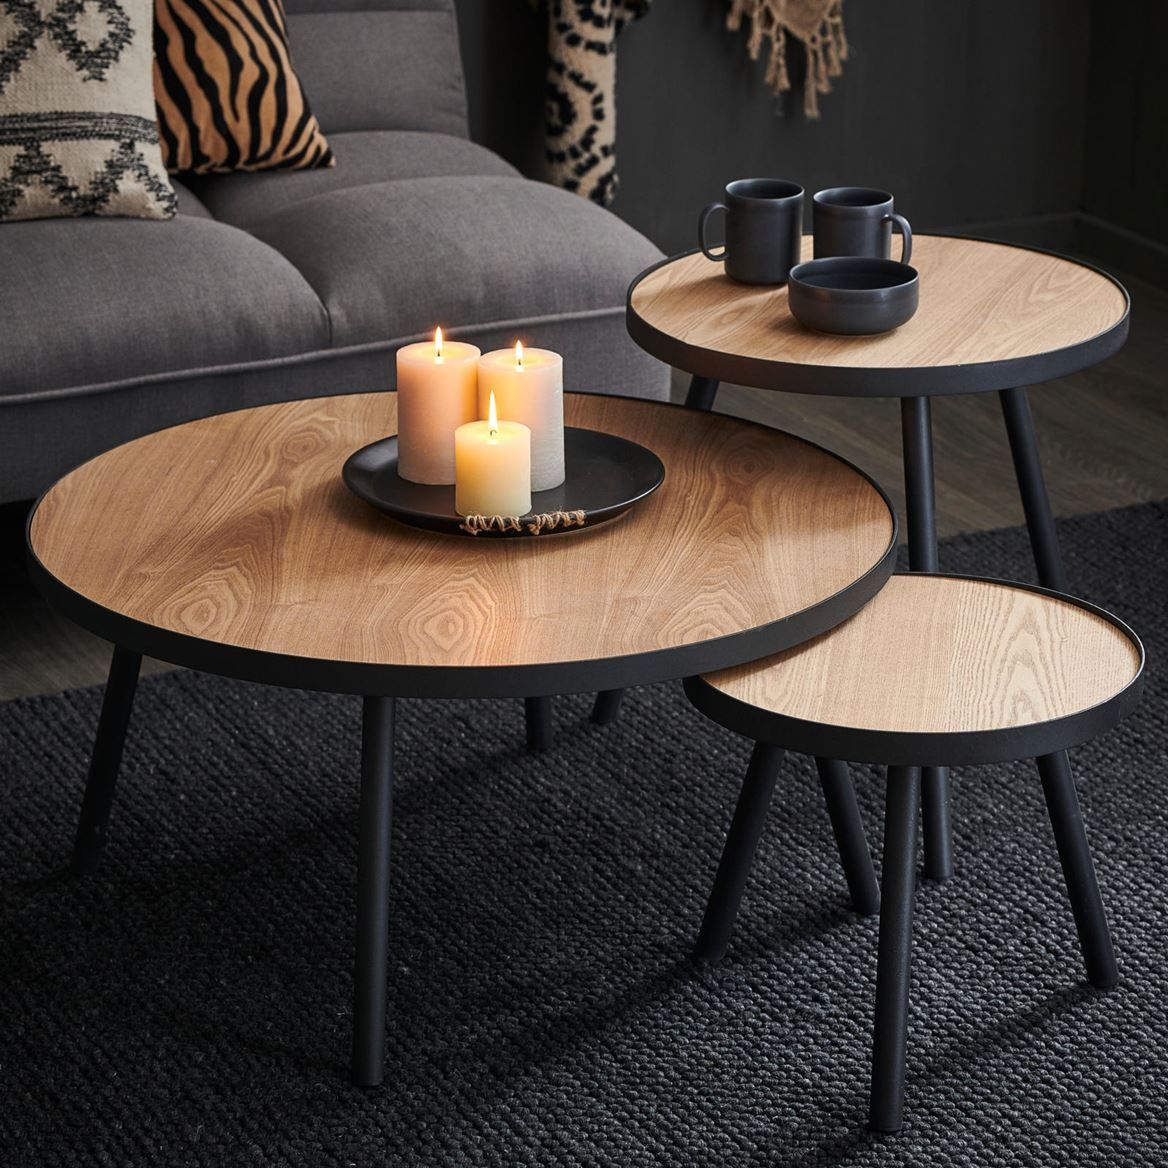 ALEXIS Table dappoint noir, naturel H 36 cm; Ø 40 cm